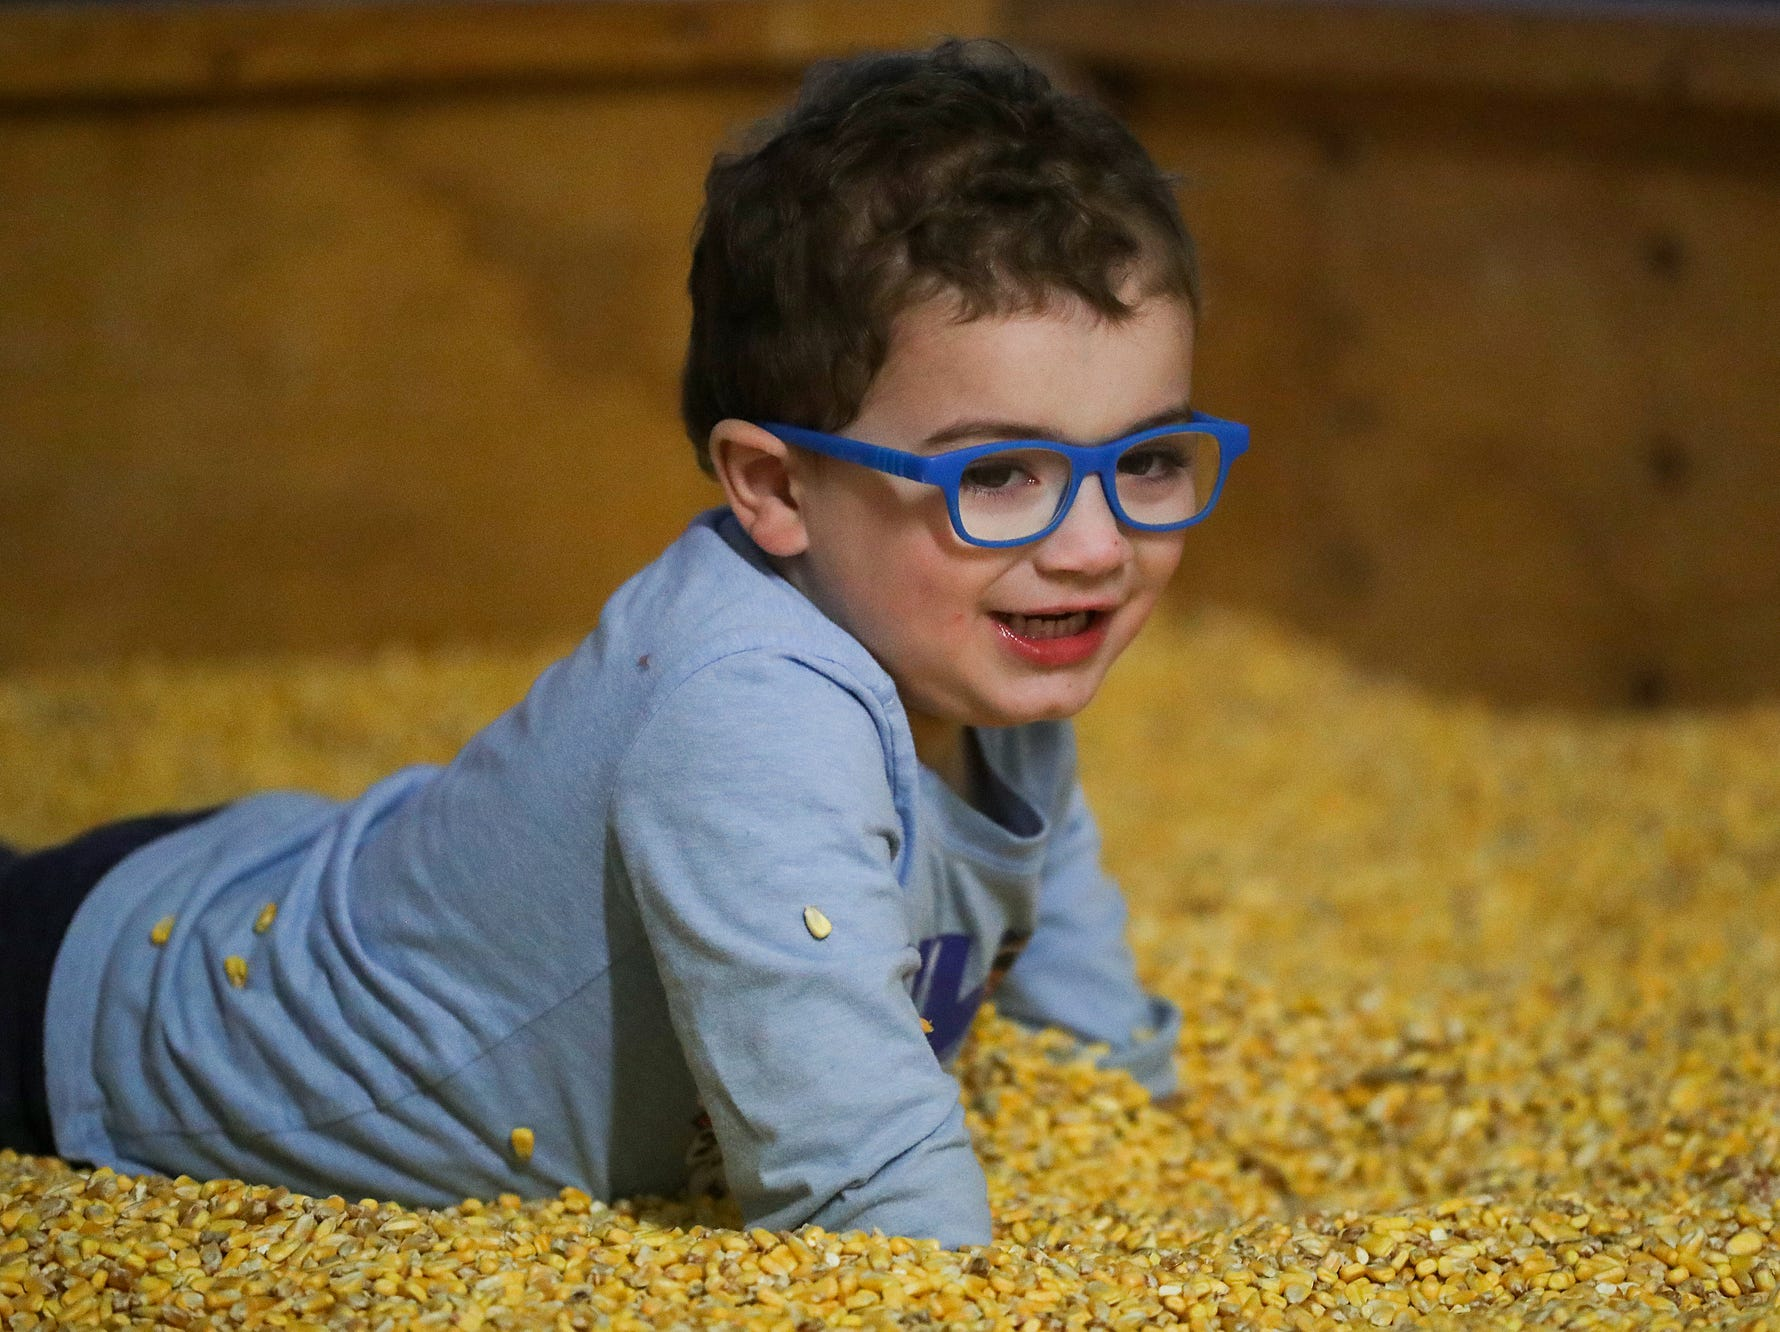 Max Carter, 3, rolls around in a large pen filled with corn kernels on opening night of the annual Headless Horseman Halloween festival at Conner Prairie in Fishers, Ind., Thursday, Oct. 11, 2018. The festival is held from 6 to 9 p.m. every Thursday through Sunday, ending Oct. 28, 2018.